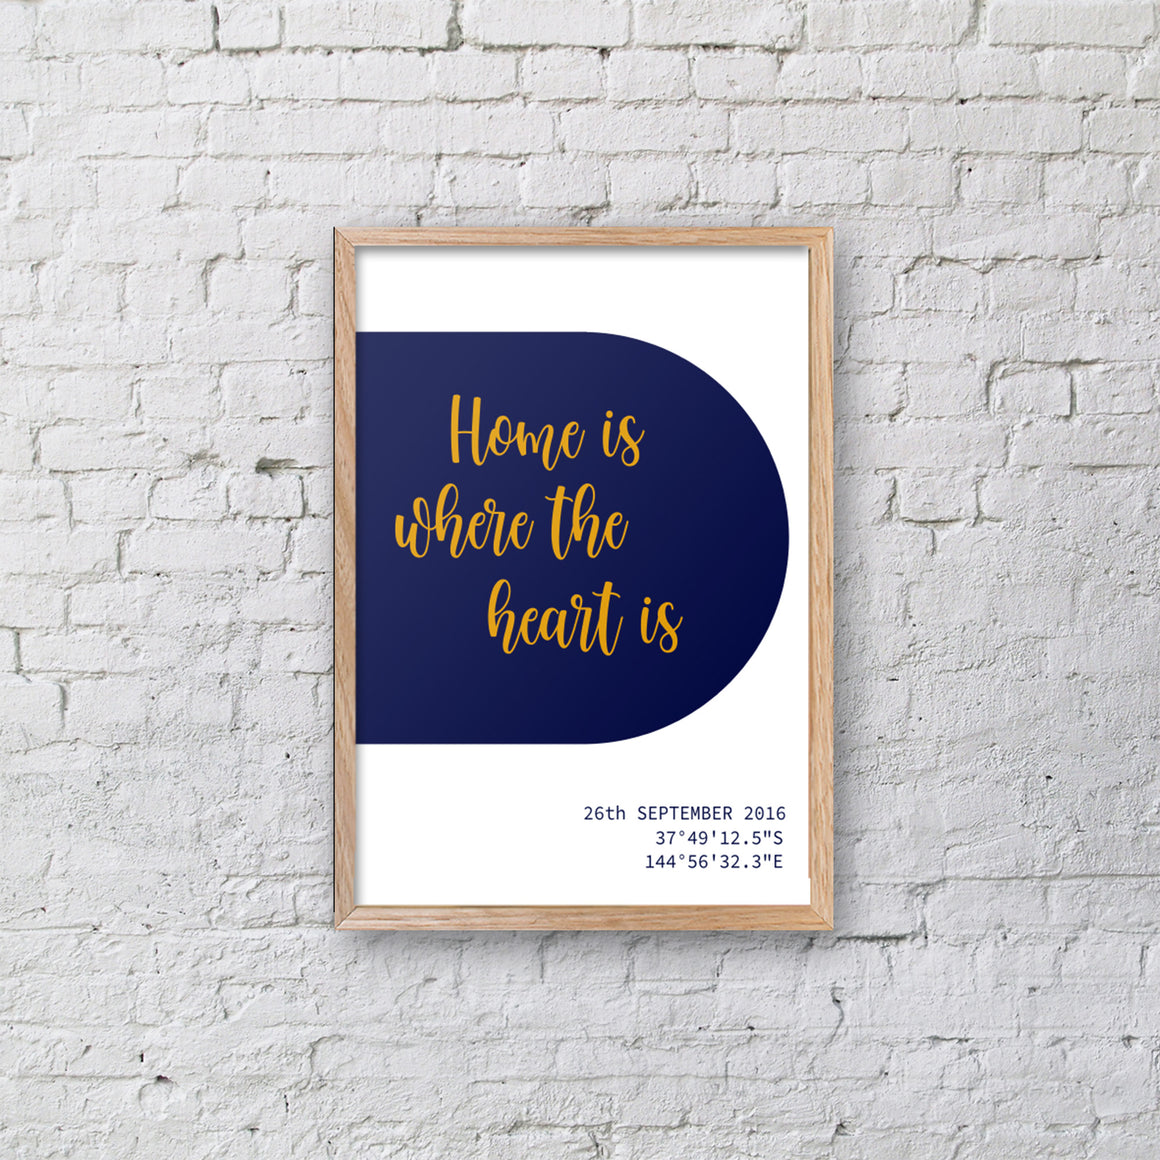 Custom Longitude / Latitude Framed Prints